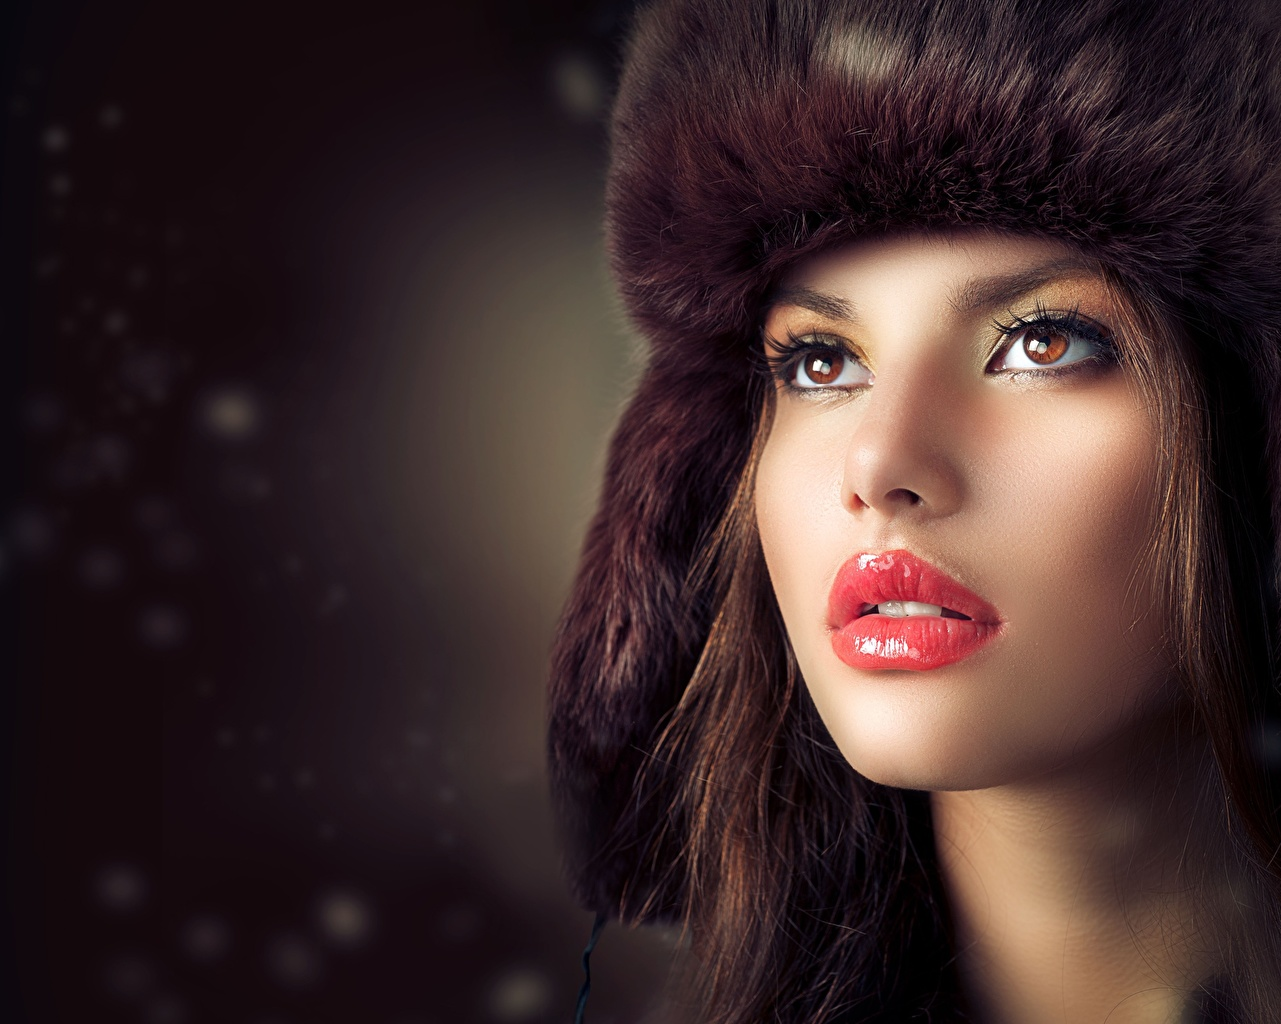 Photo Modelling Makeup Judy Wilkins Face Girls Winter hat Staring Red lips Model female young woman Glance